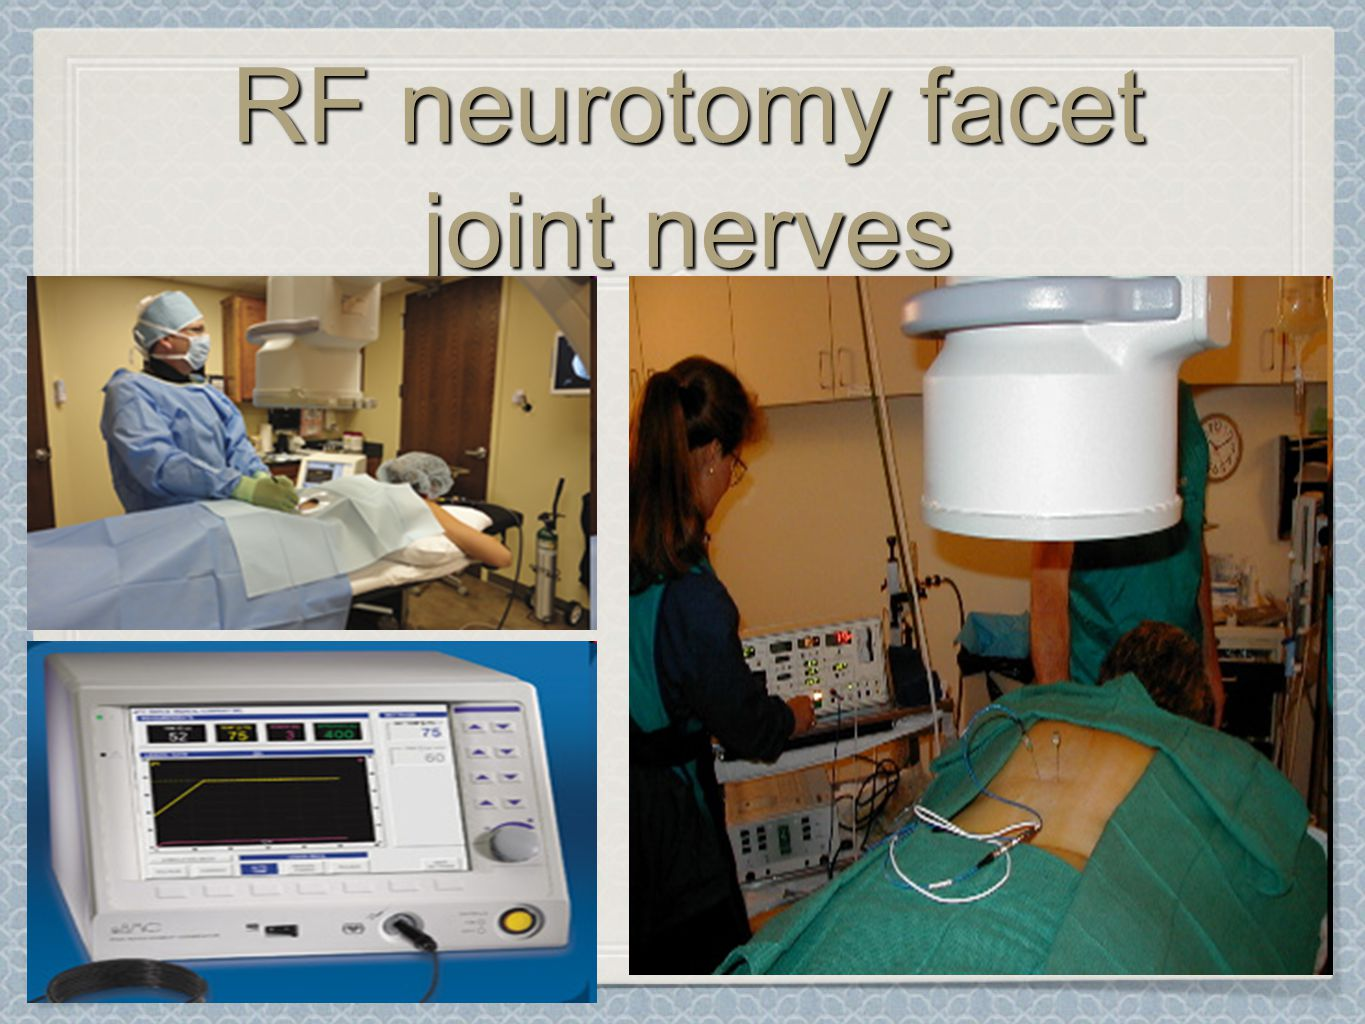 RF neurotomy facet joint nerves